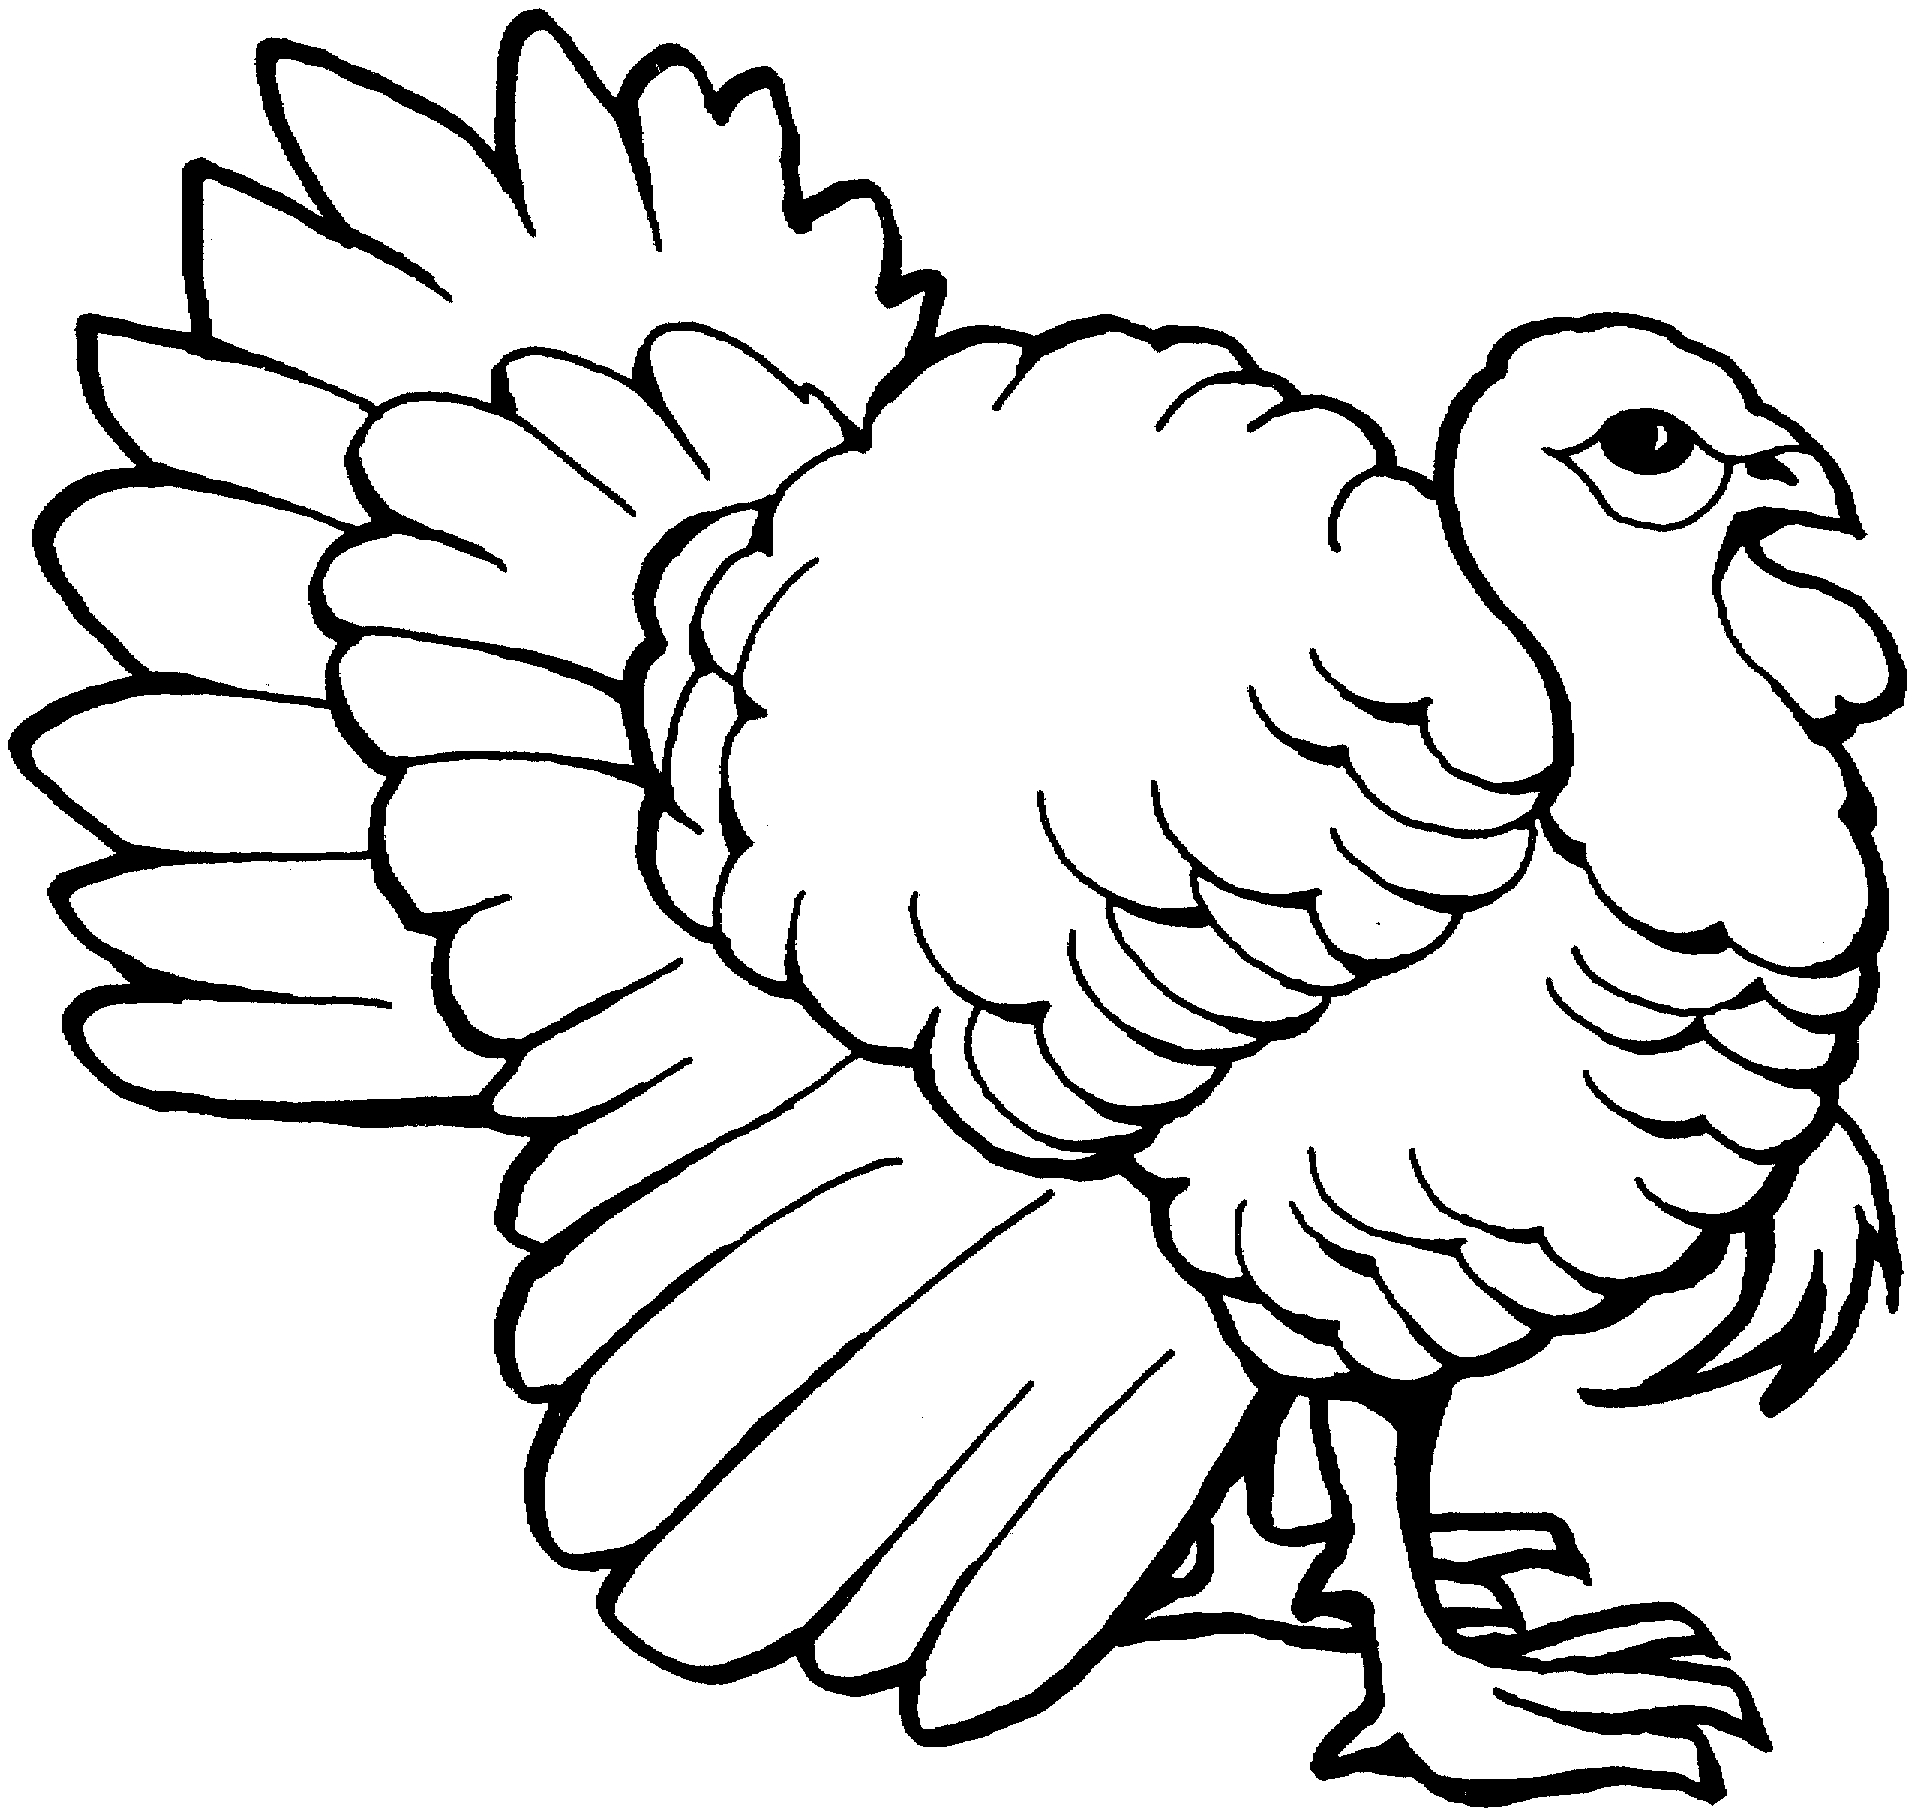 Turkey clip art outline. Best of clipart black